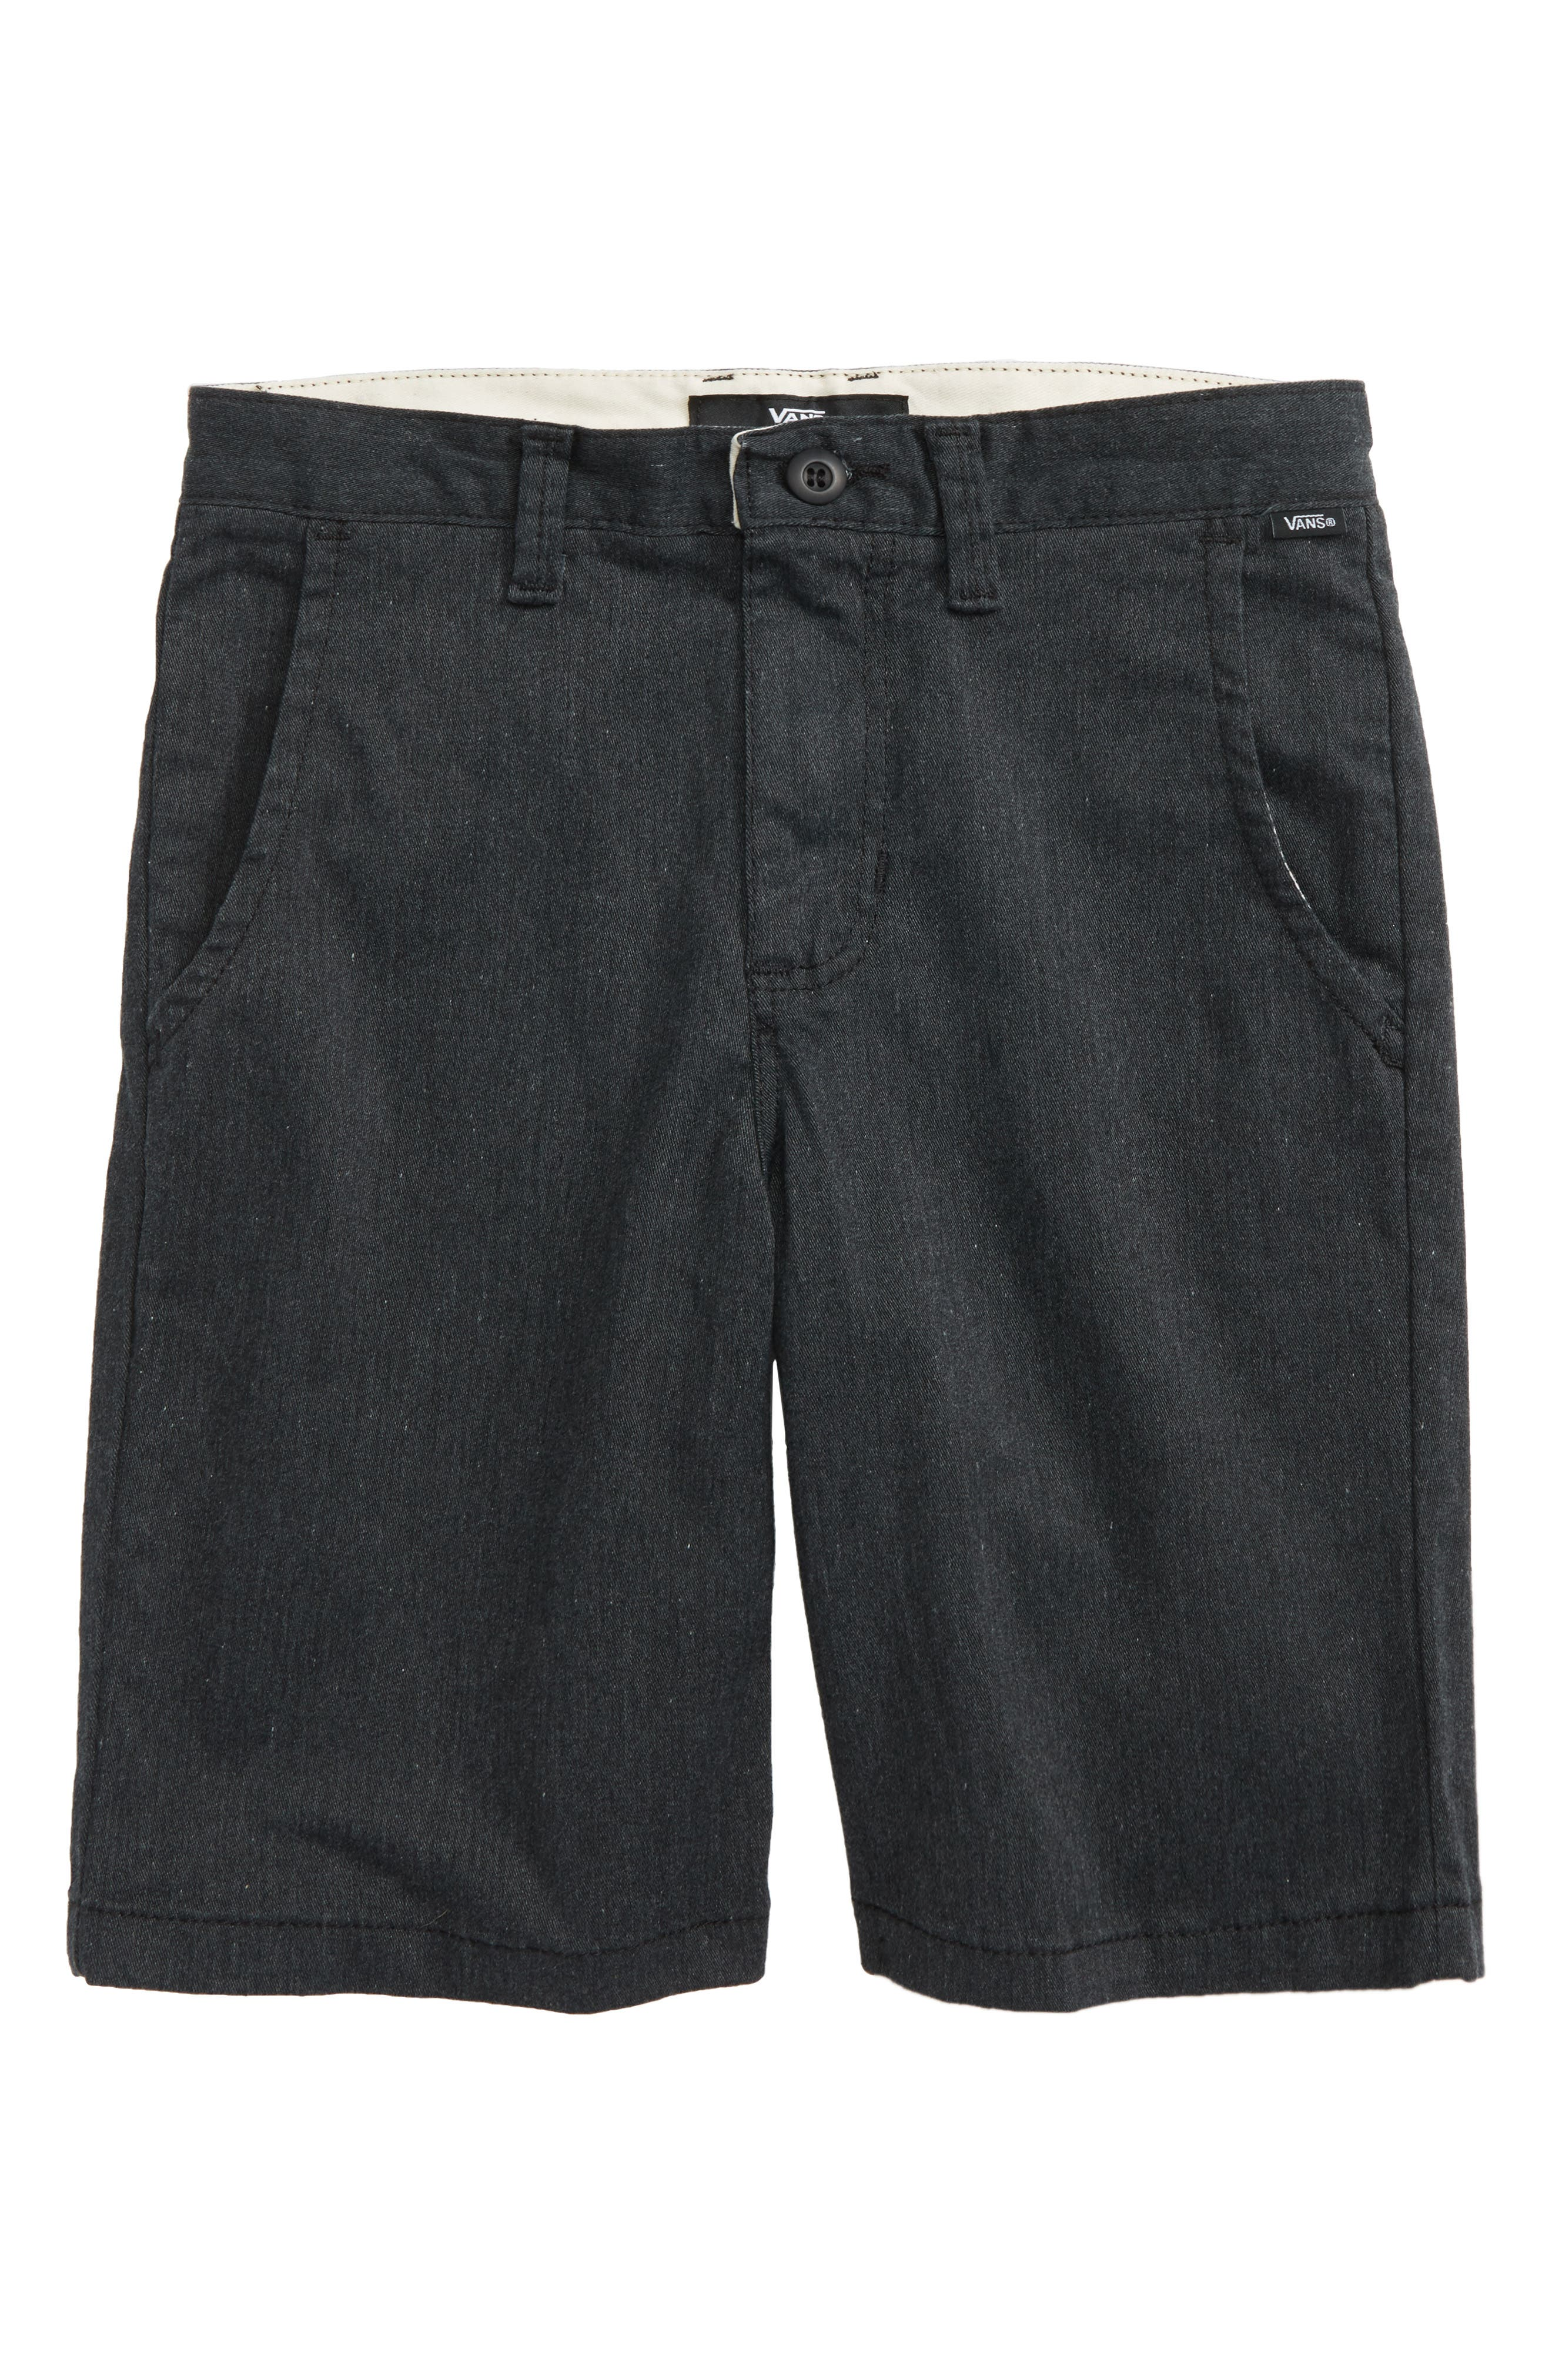 Authentic Stretch Shorts,                         Main,                         color, Black Heather